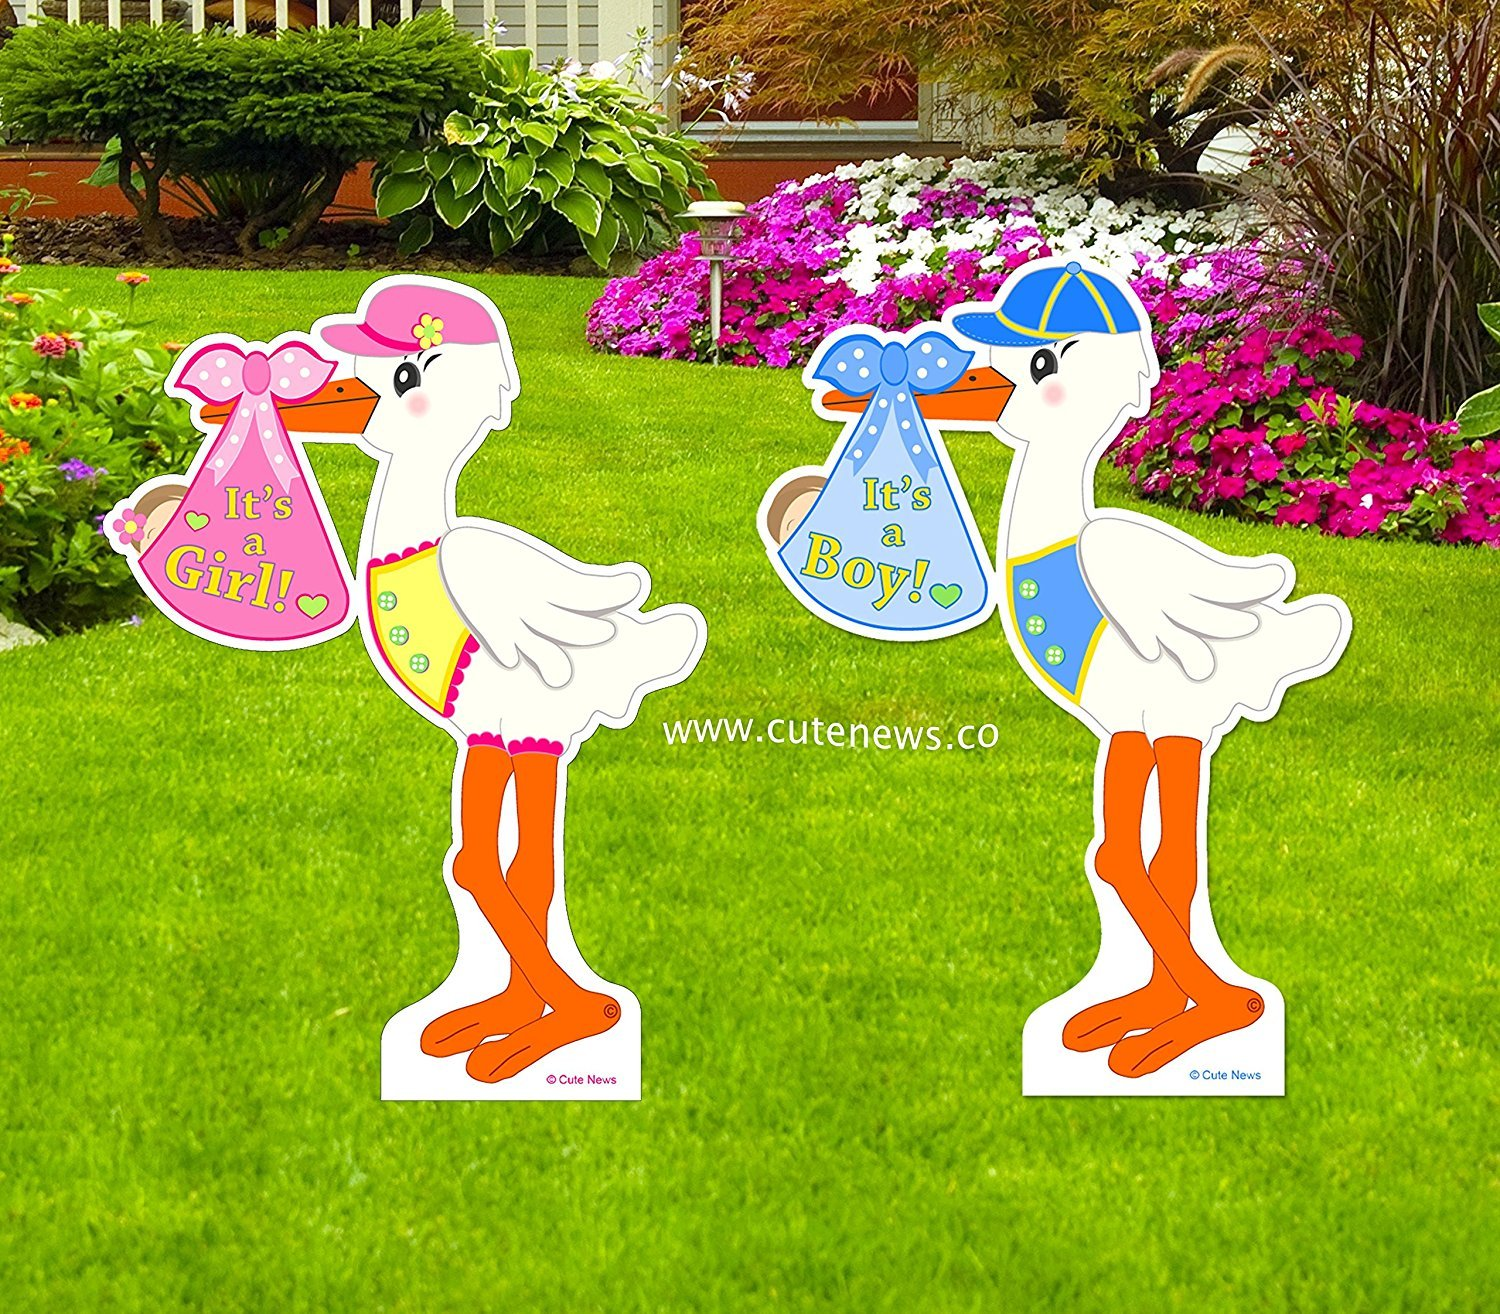 Amazoncom Its a Girl Yard Stork Announcement Sign Welcome